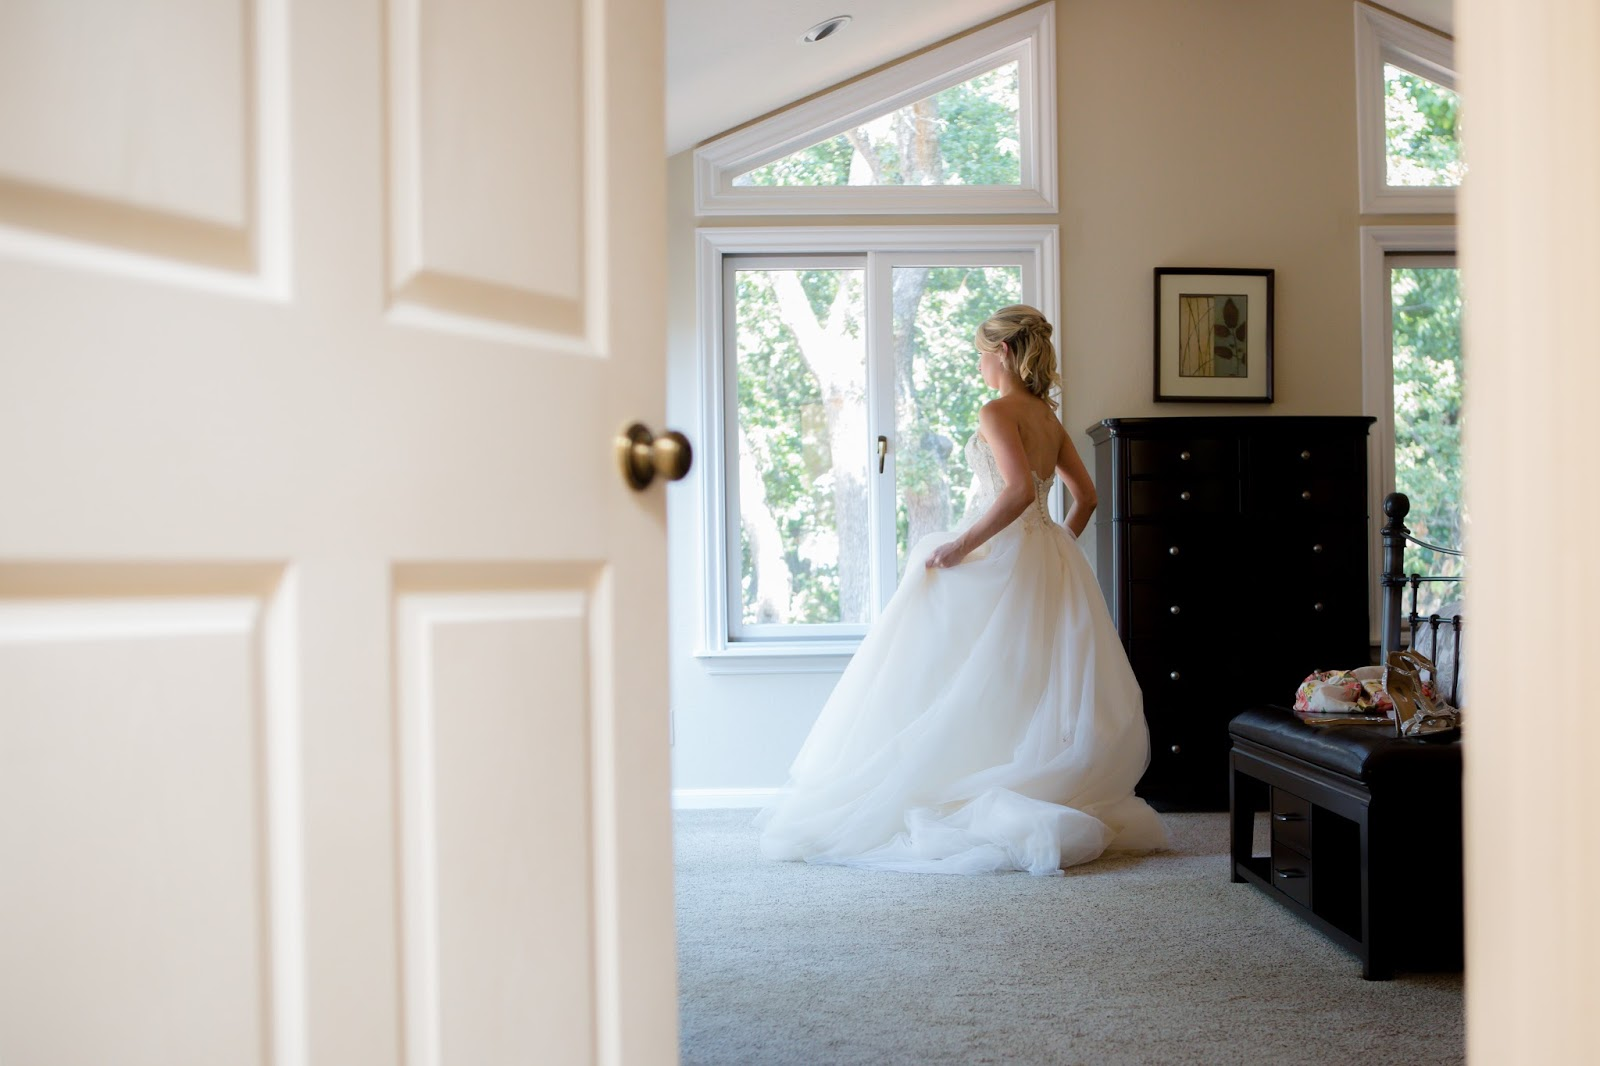 Bride looking outside